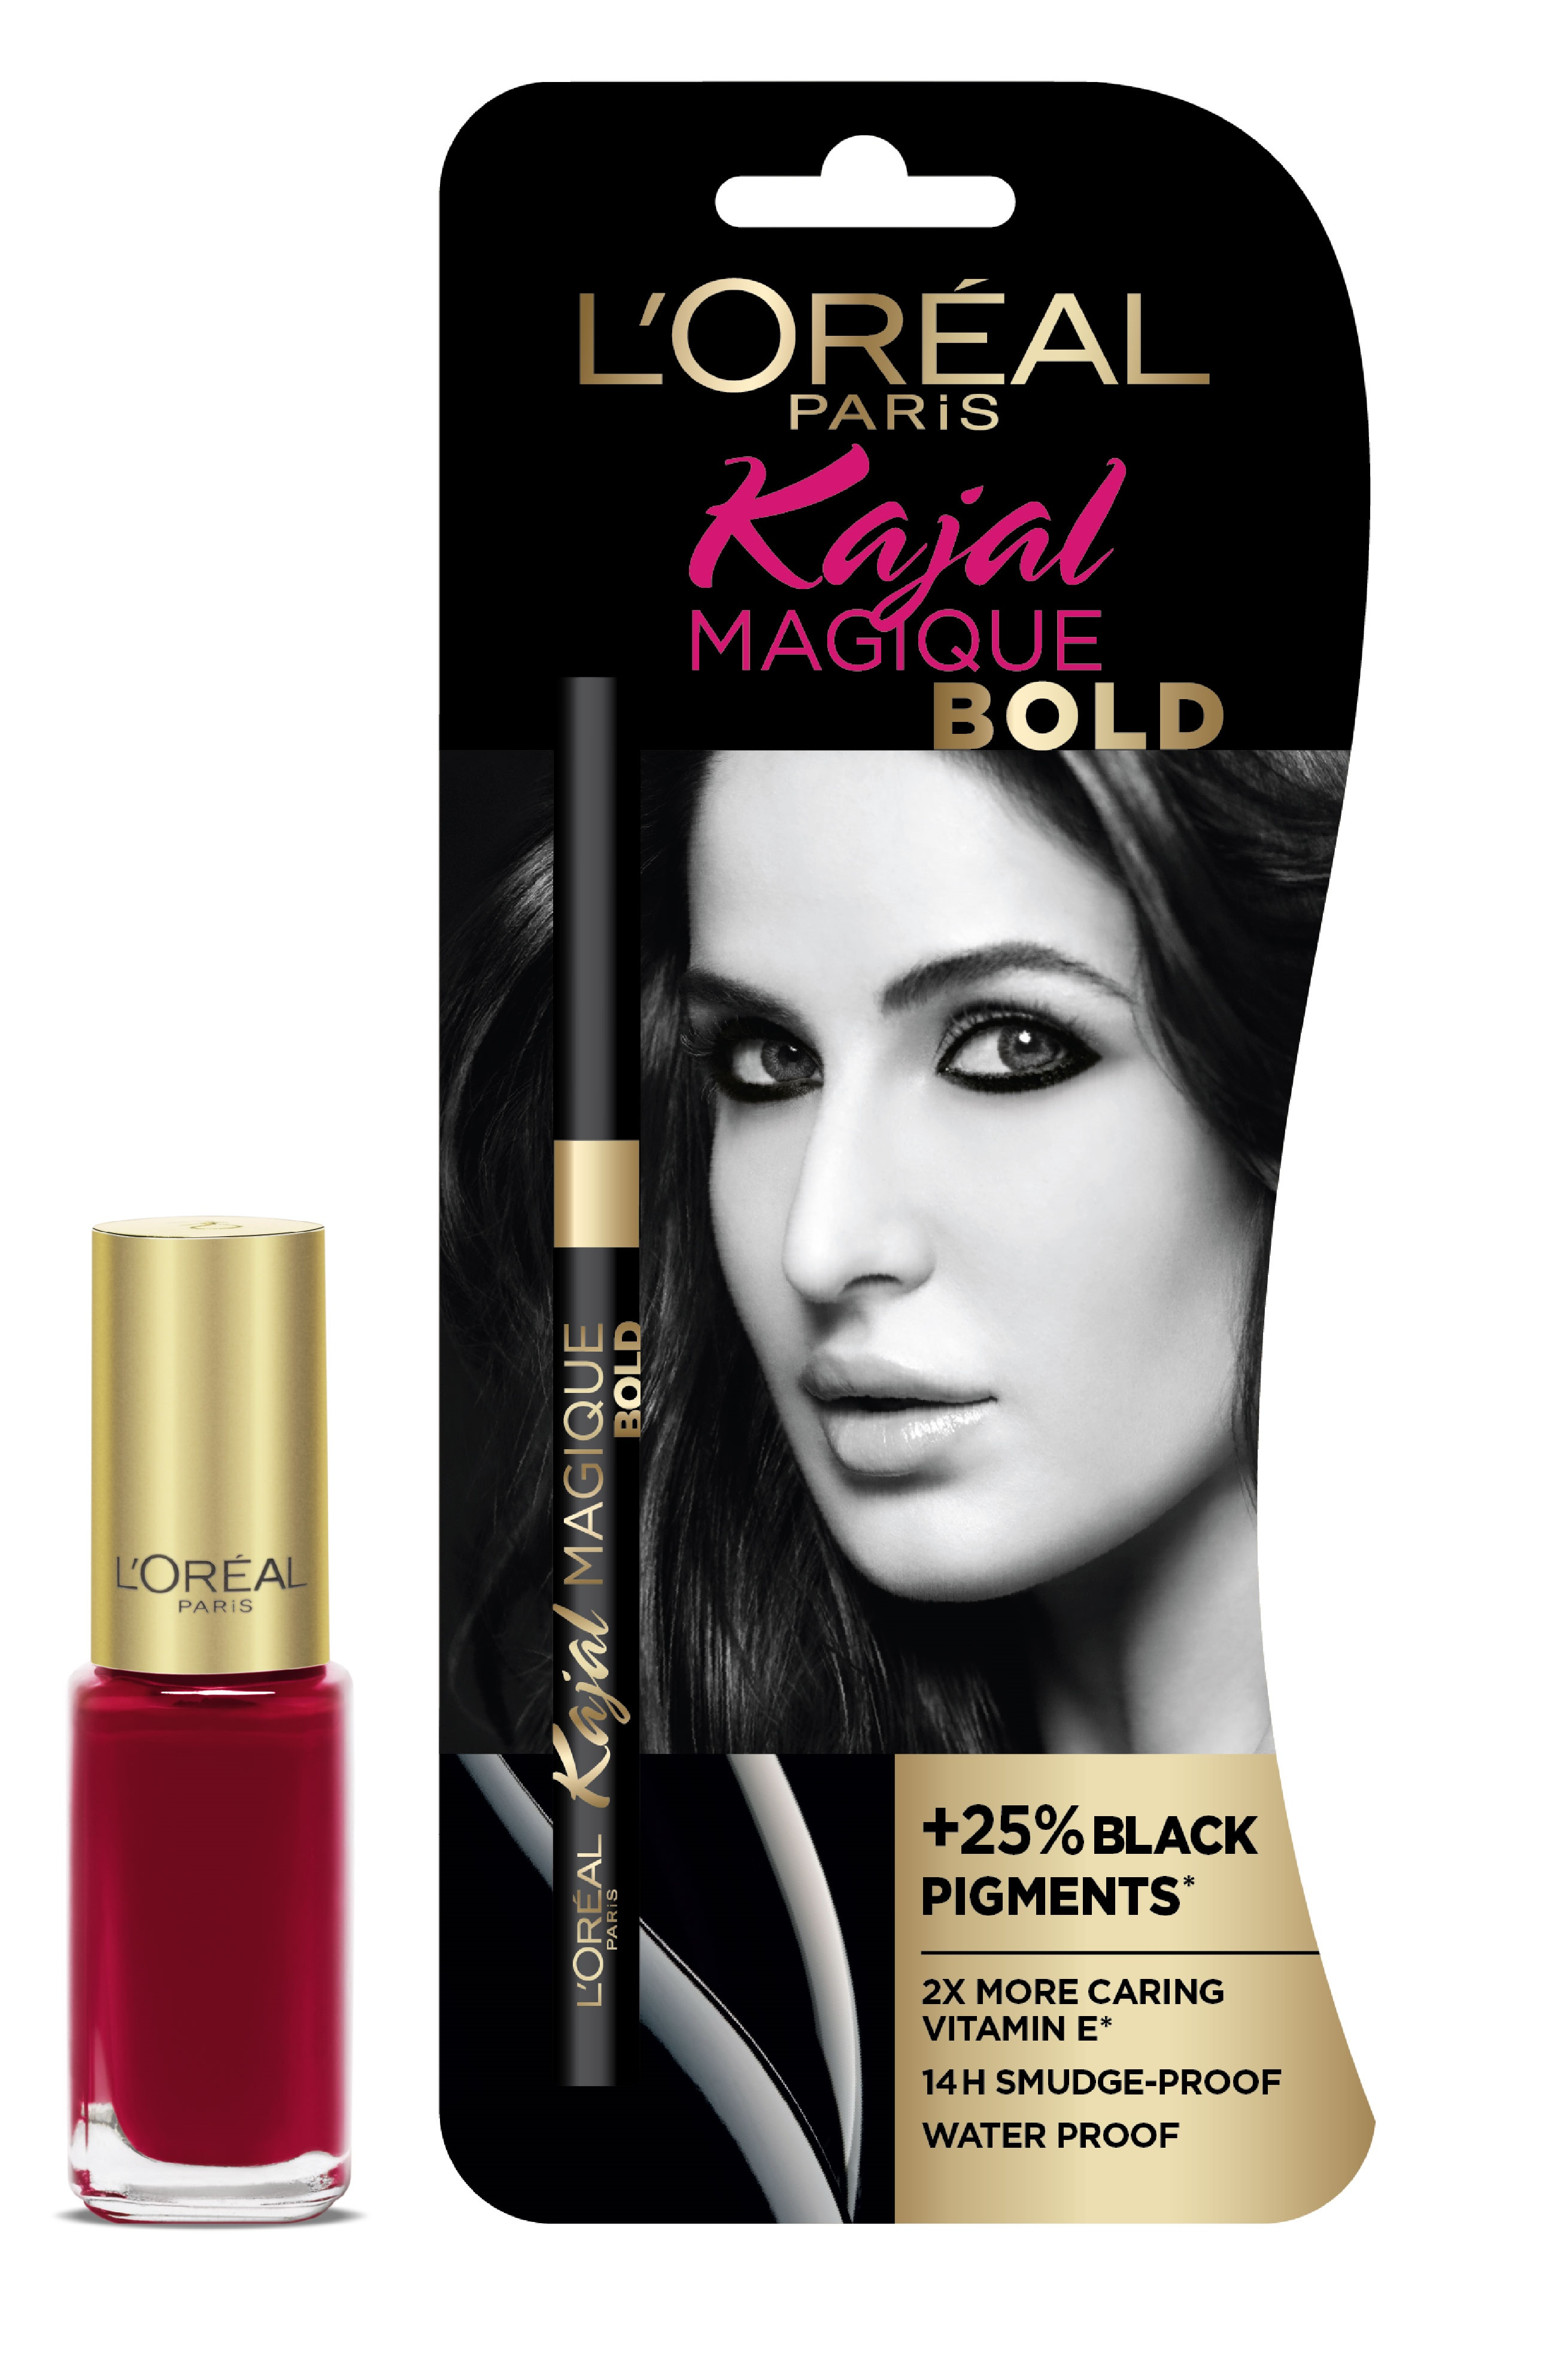 L'Oreal Paris Kajal Magique Bold + Color Riche Vernis Plum Liberty  available at Nykaa for Rs.500